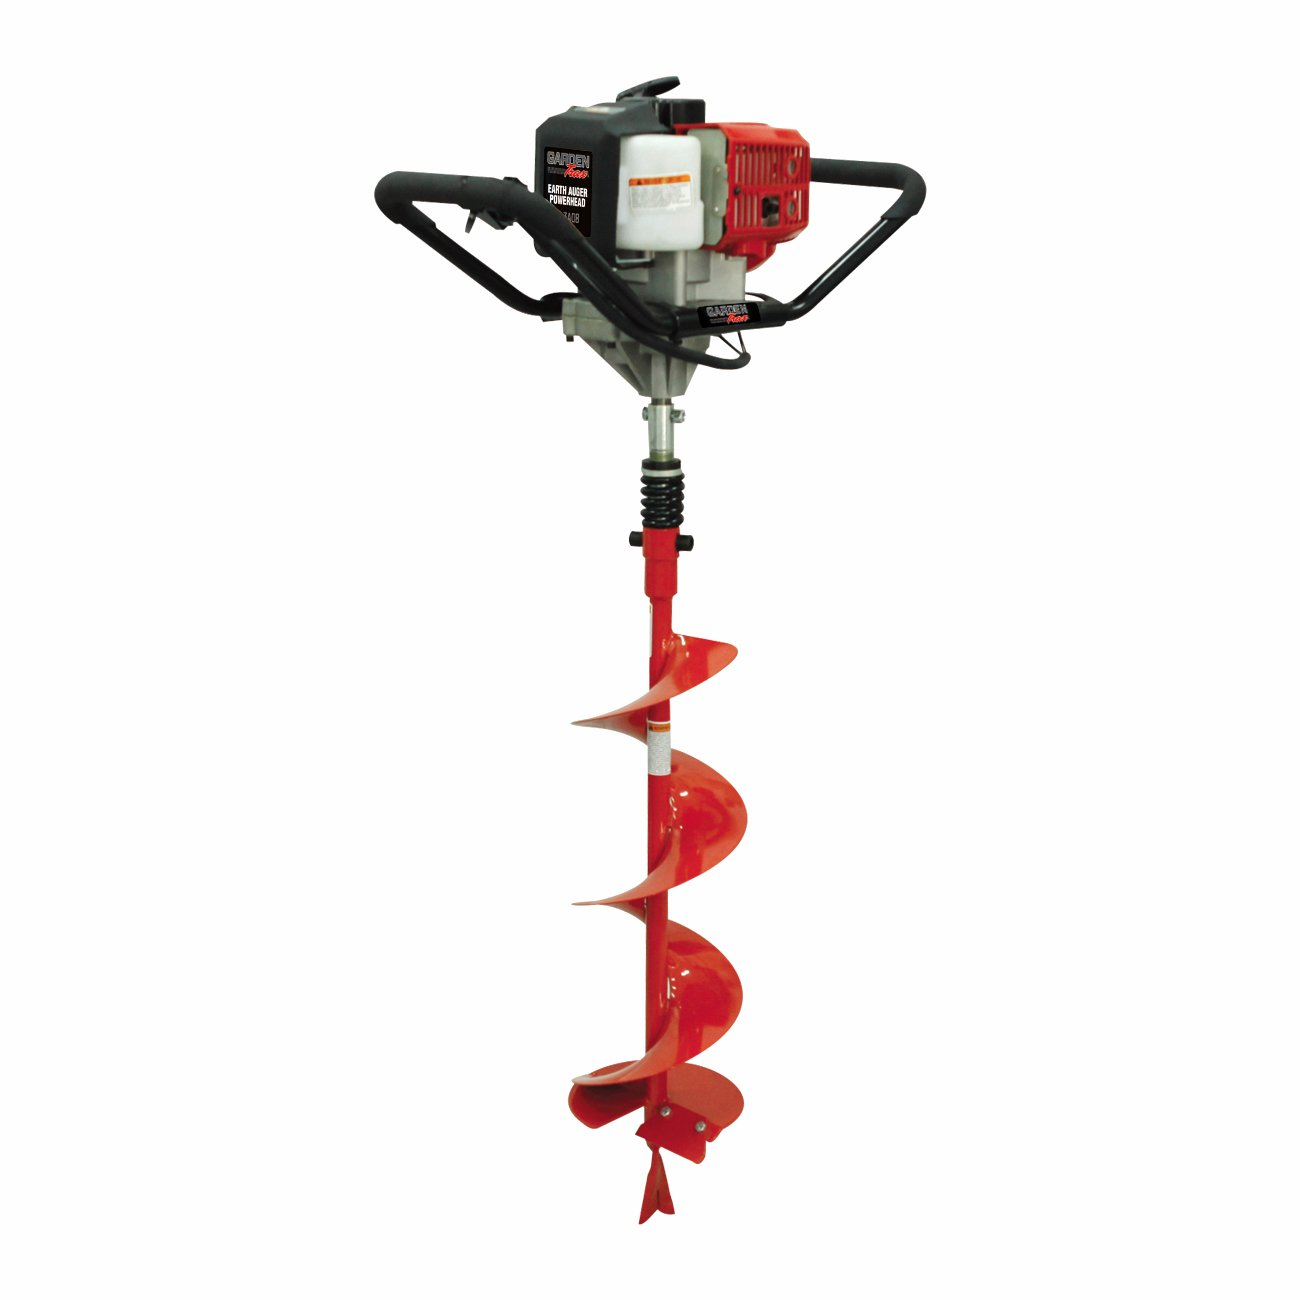 GardenTrax Earth Auger Combo by GardenTrax